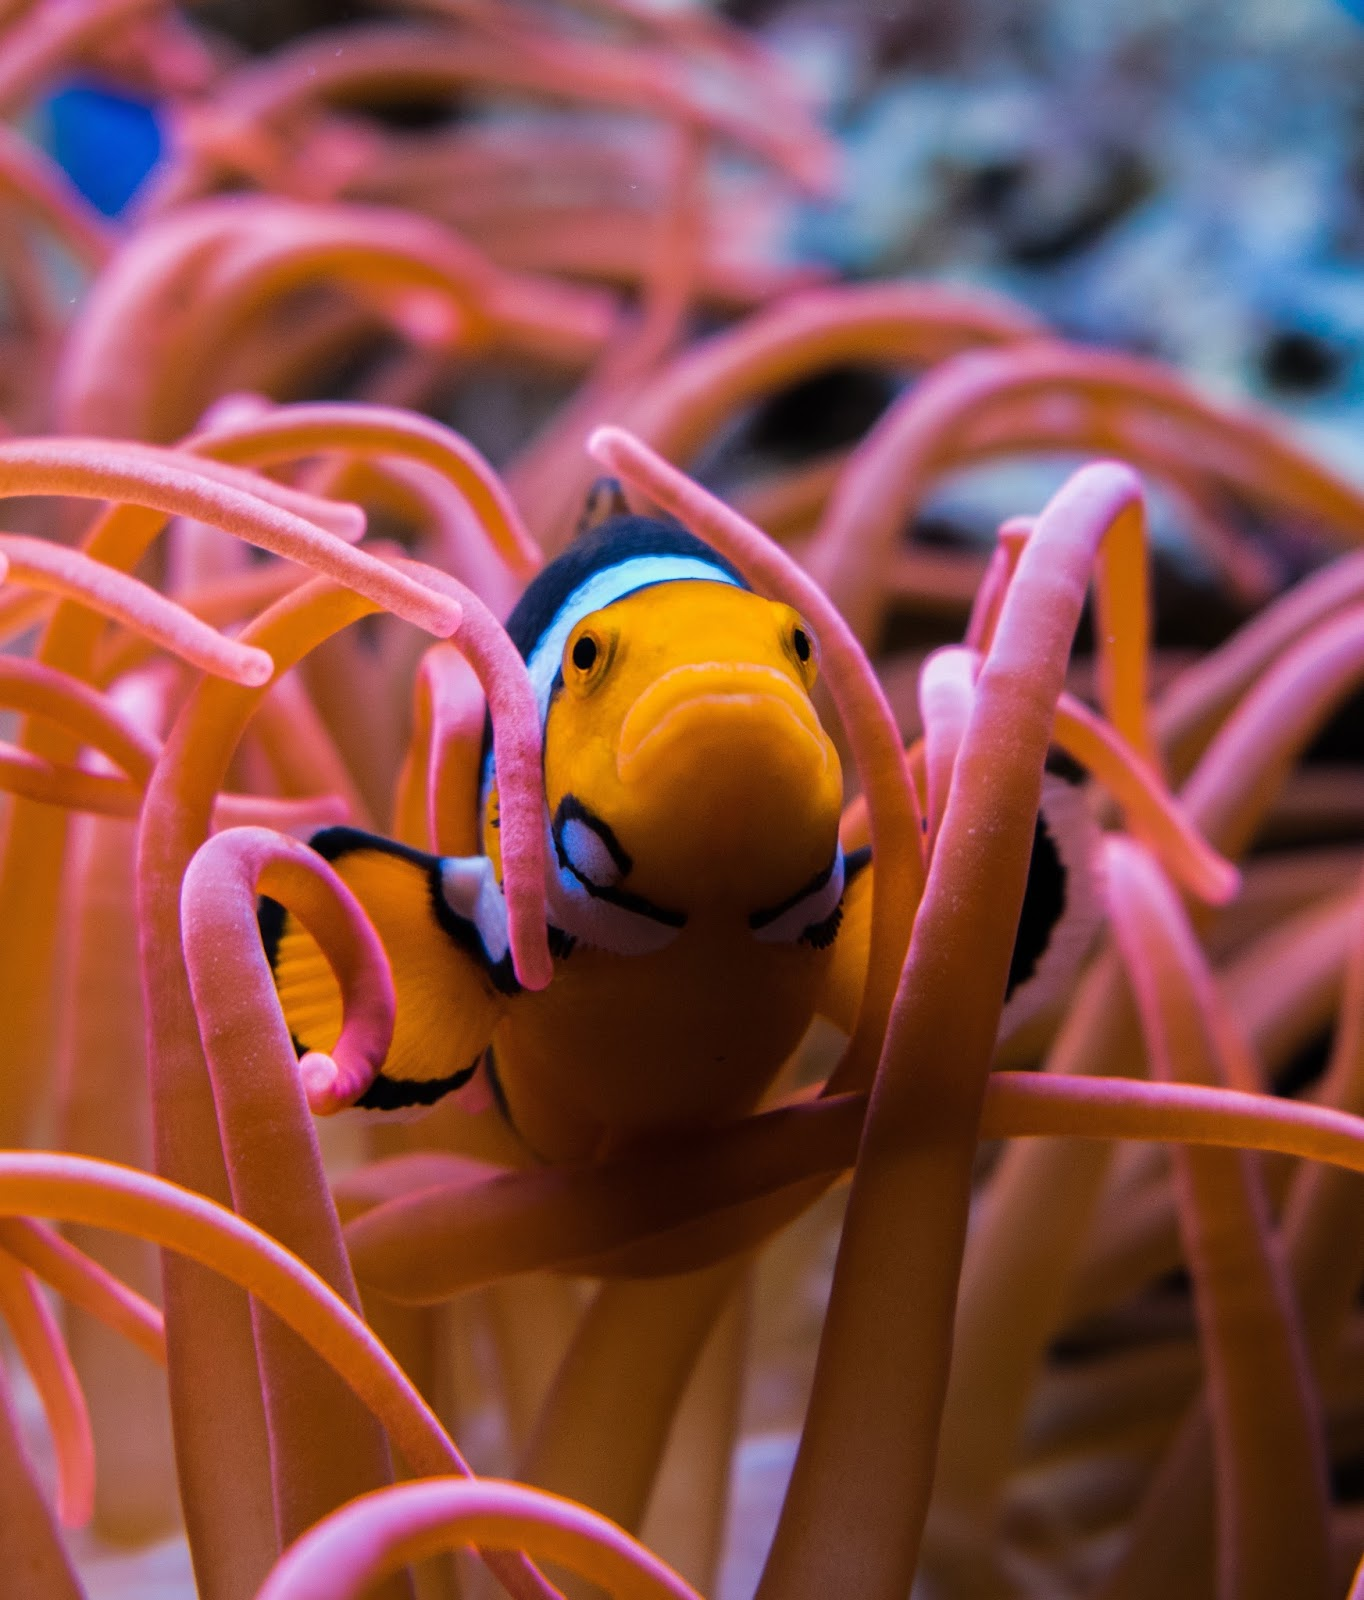 A clownfish inside poisonous anemone.